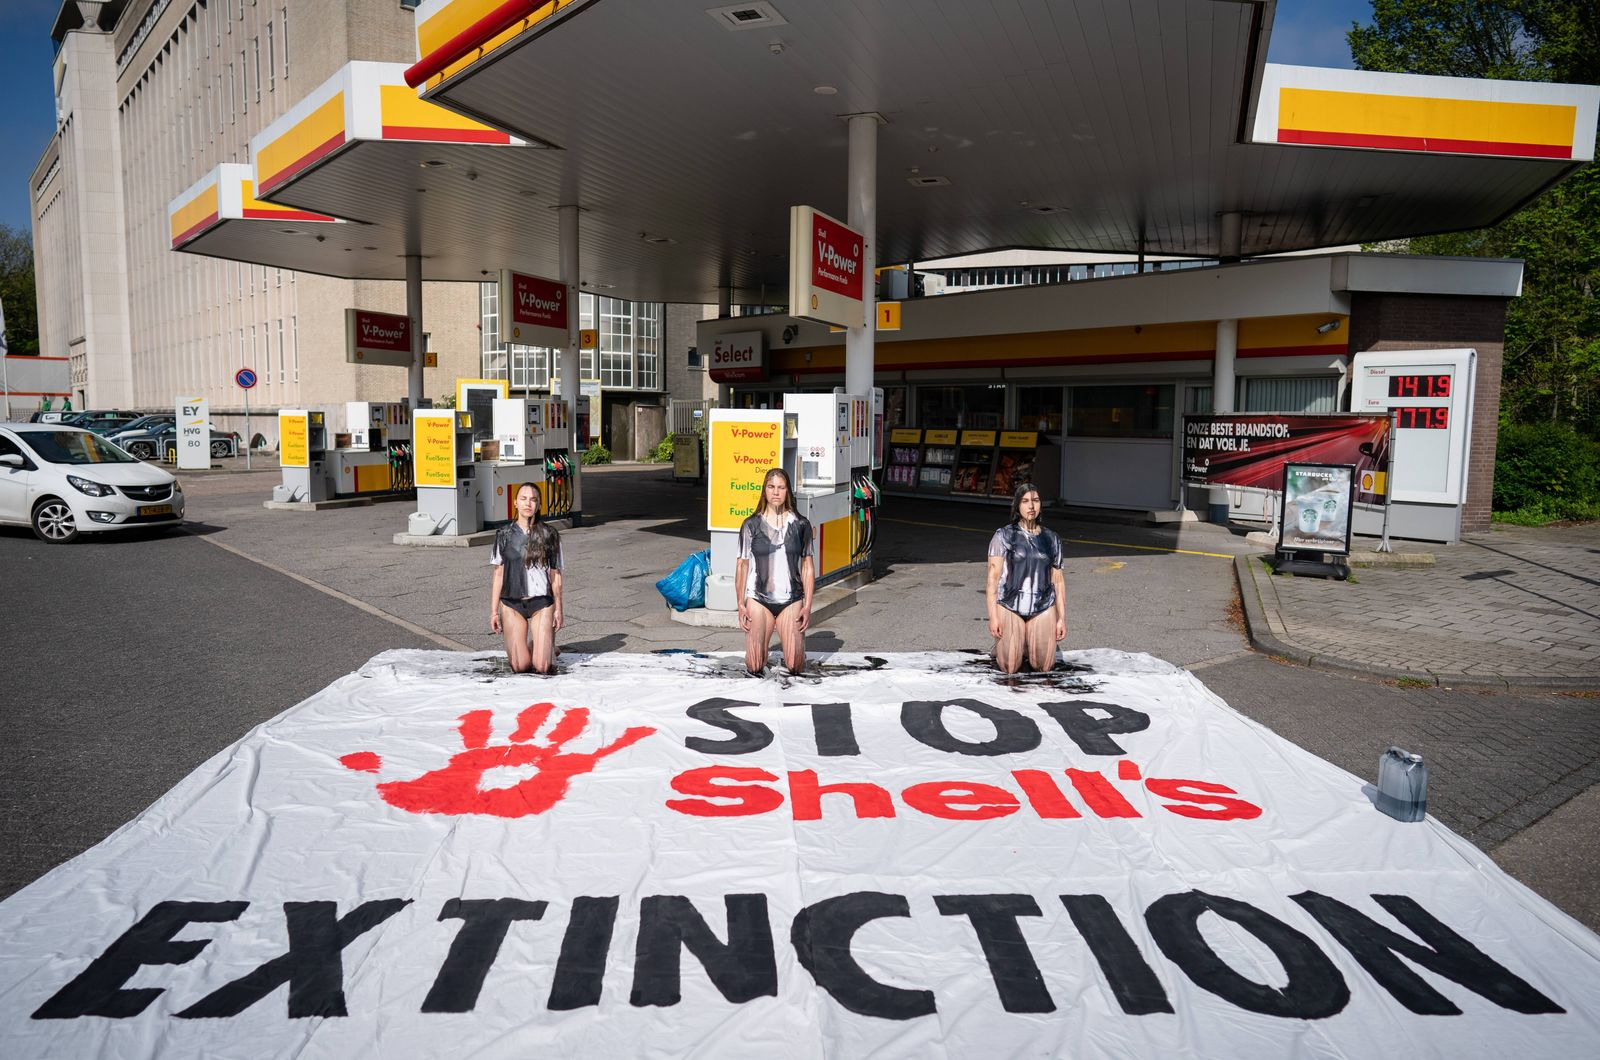 THE HAGUE - Campaigners demonstrate at a Shell gas station during a Shell must fall promotion by Extinction Rebellion a